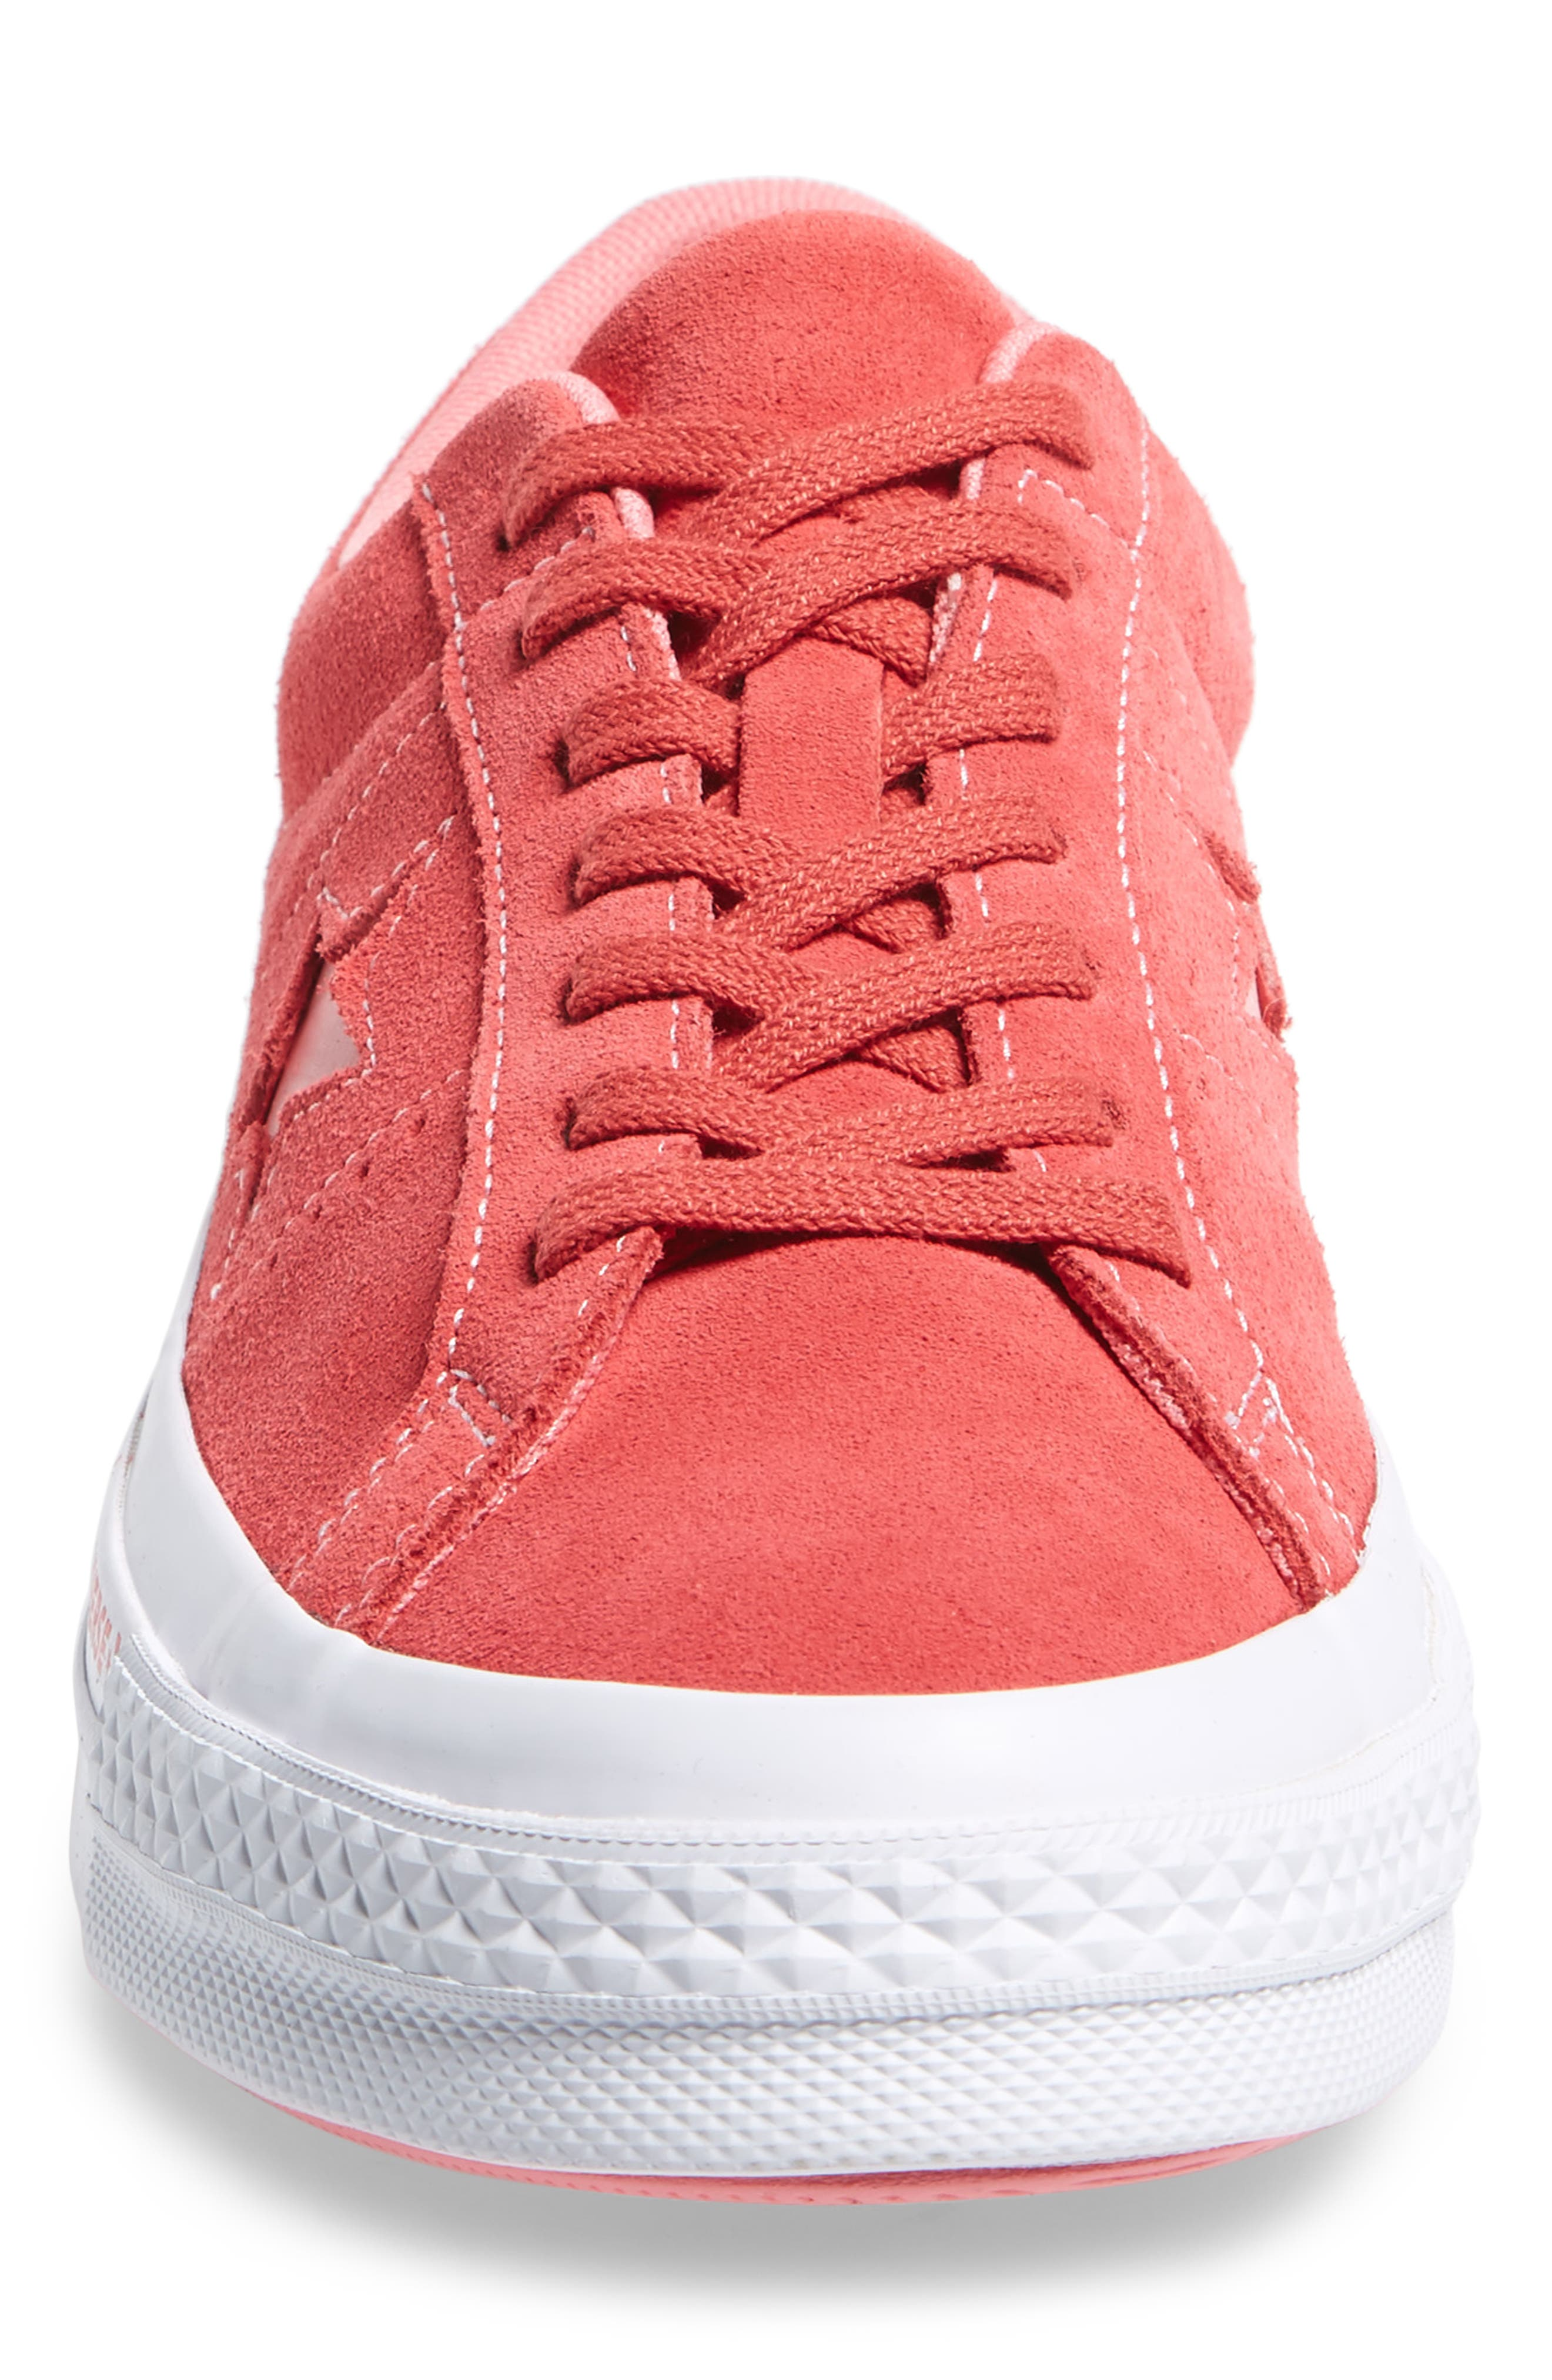 Chuck Taylor<sup>®</sup> One Star Pinstripe Sneaker,                             Alternate thumbnail 4, color,                             Paradise Pink Suede